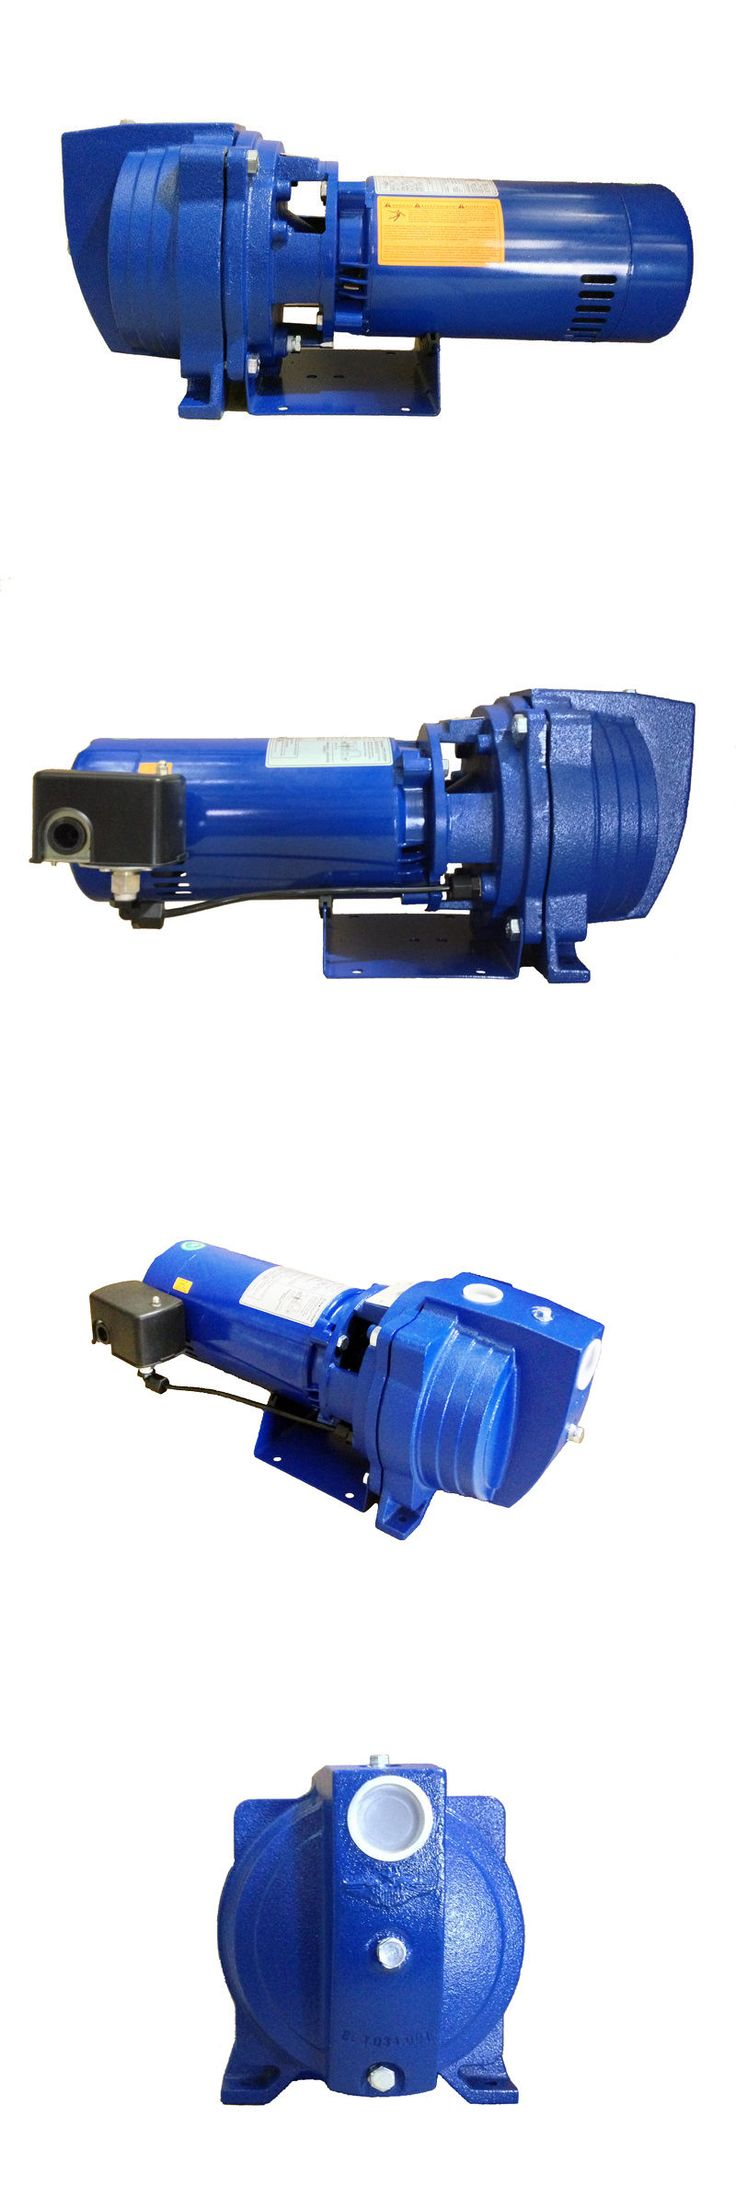 19 Best Water Pumps Images On Pinterest Choux Pastry